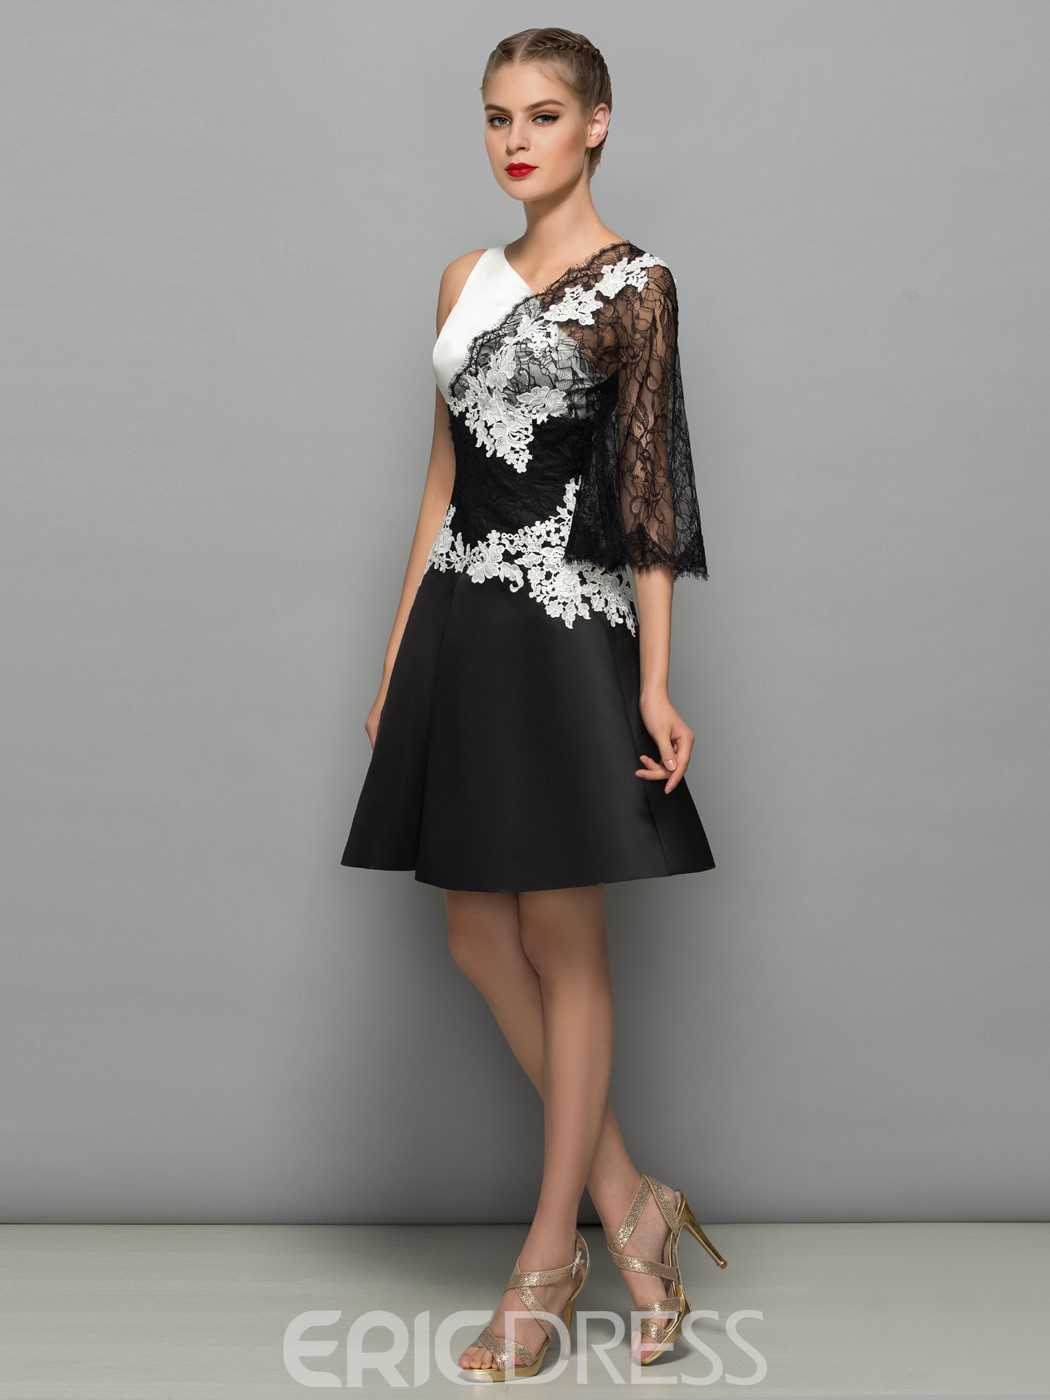 Ericdress A-Line V-Neck Appliques Lace Short Cocktail Dress